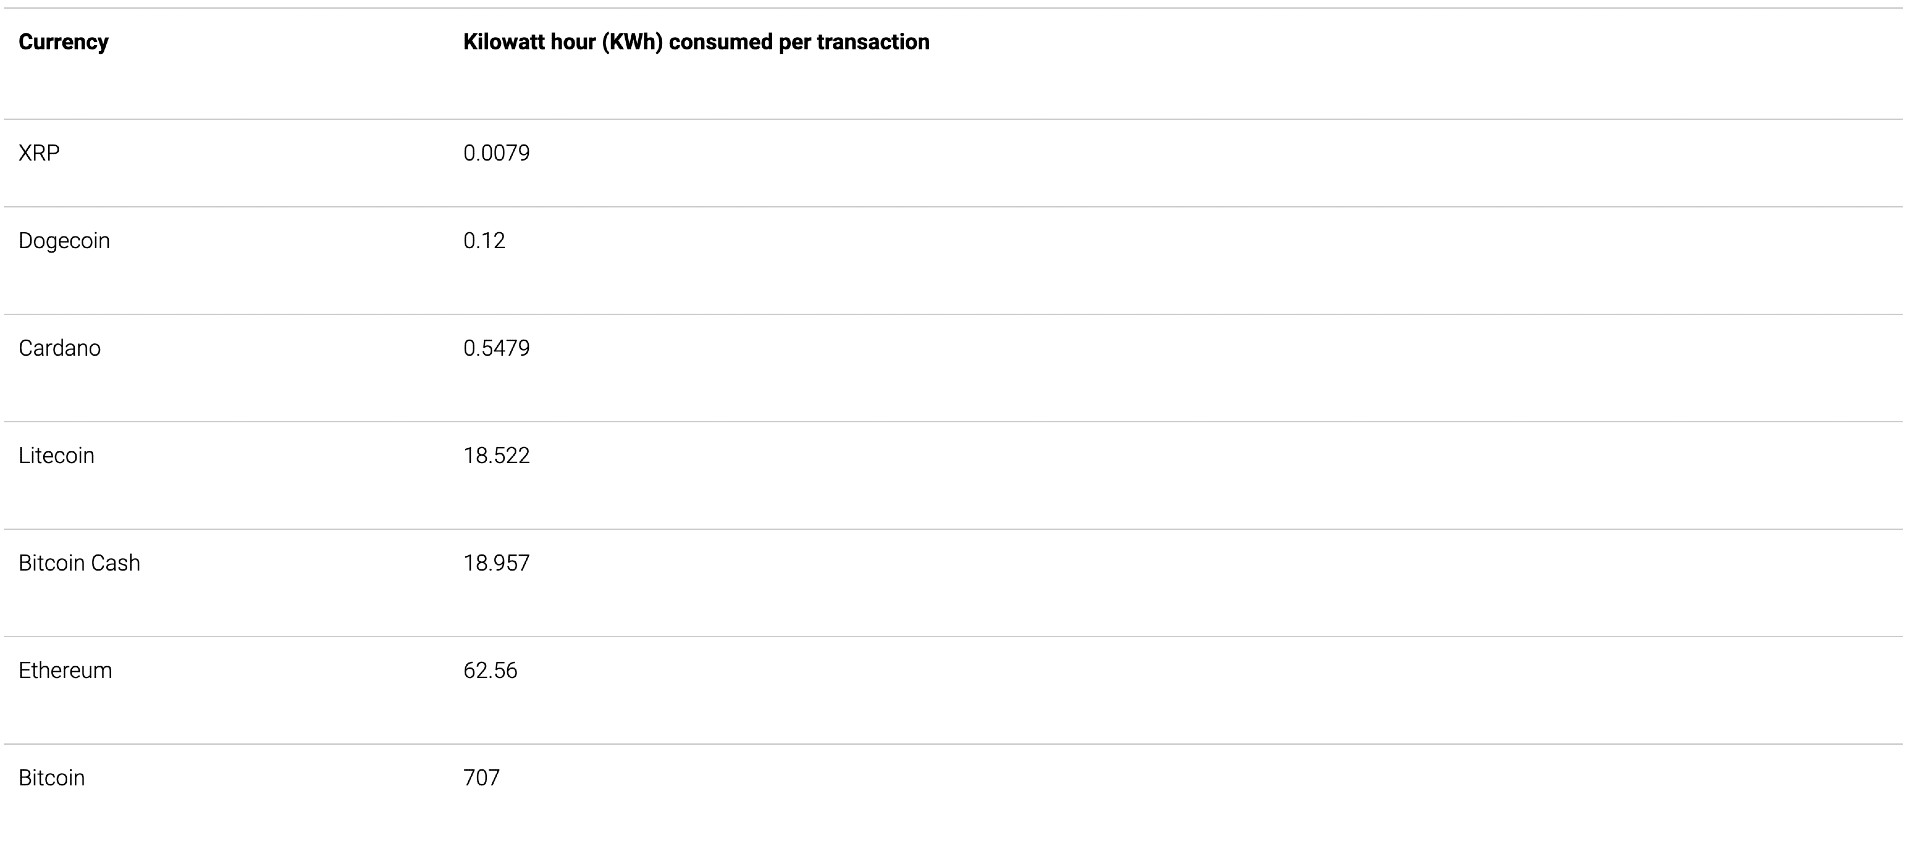 cyptocurrency-energy-use-per-transaction-trg-data-centers